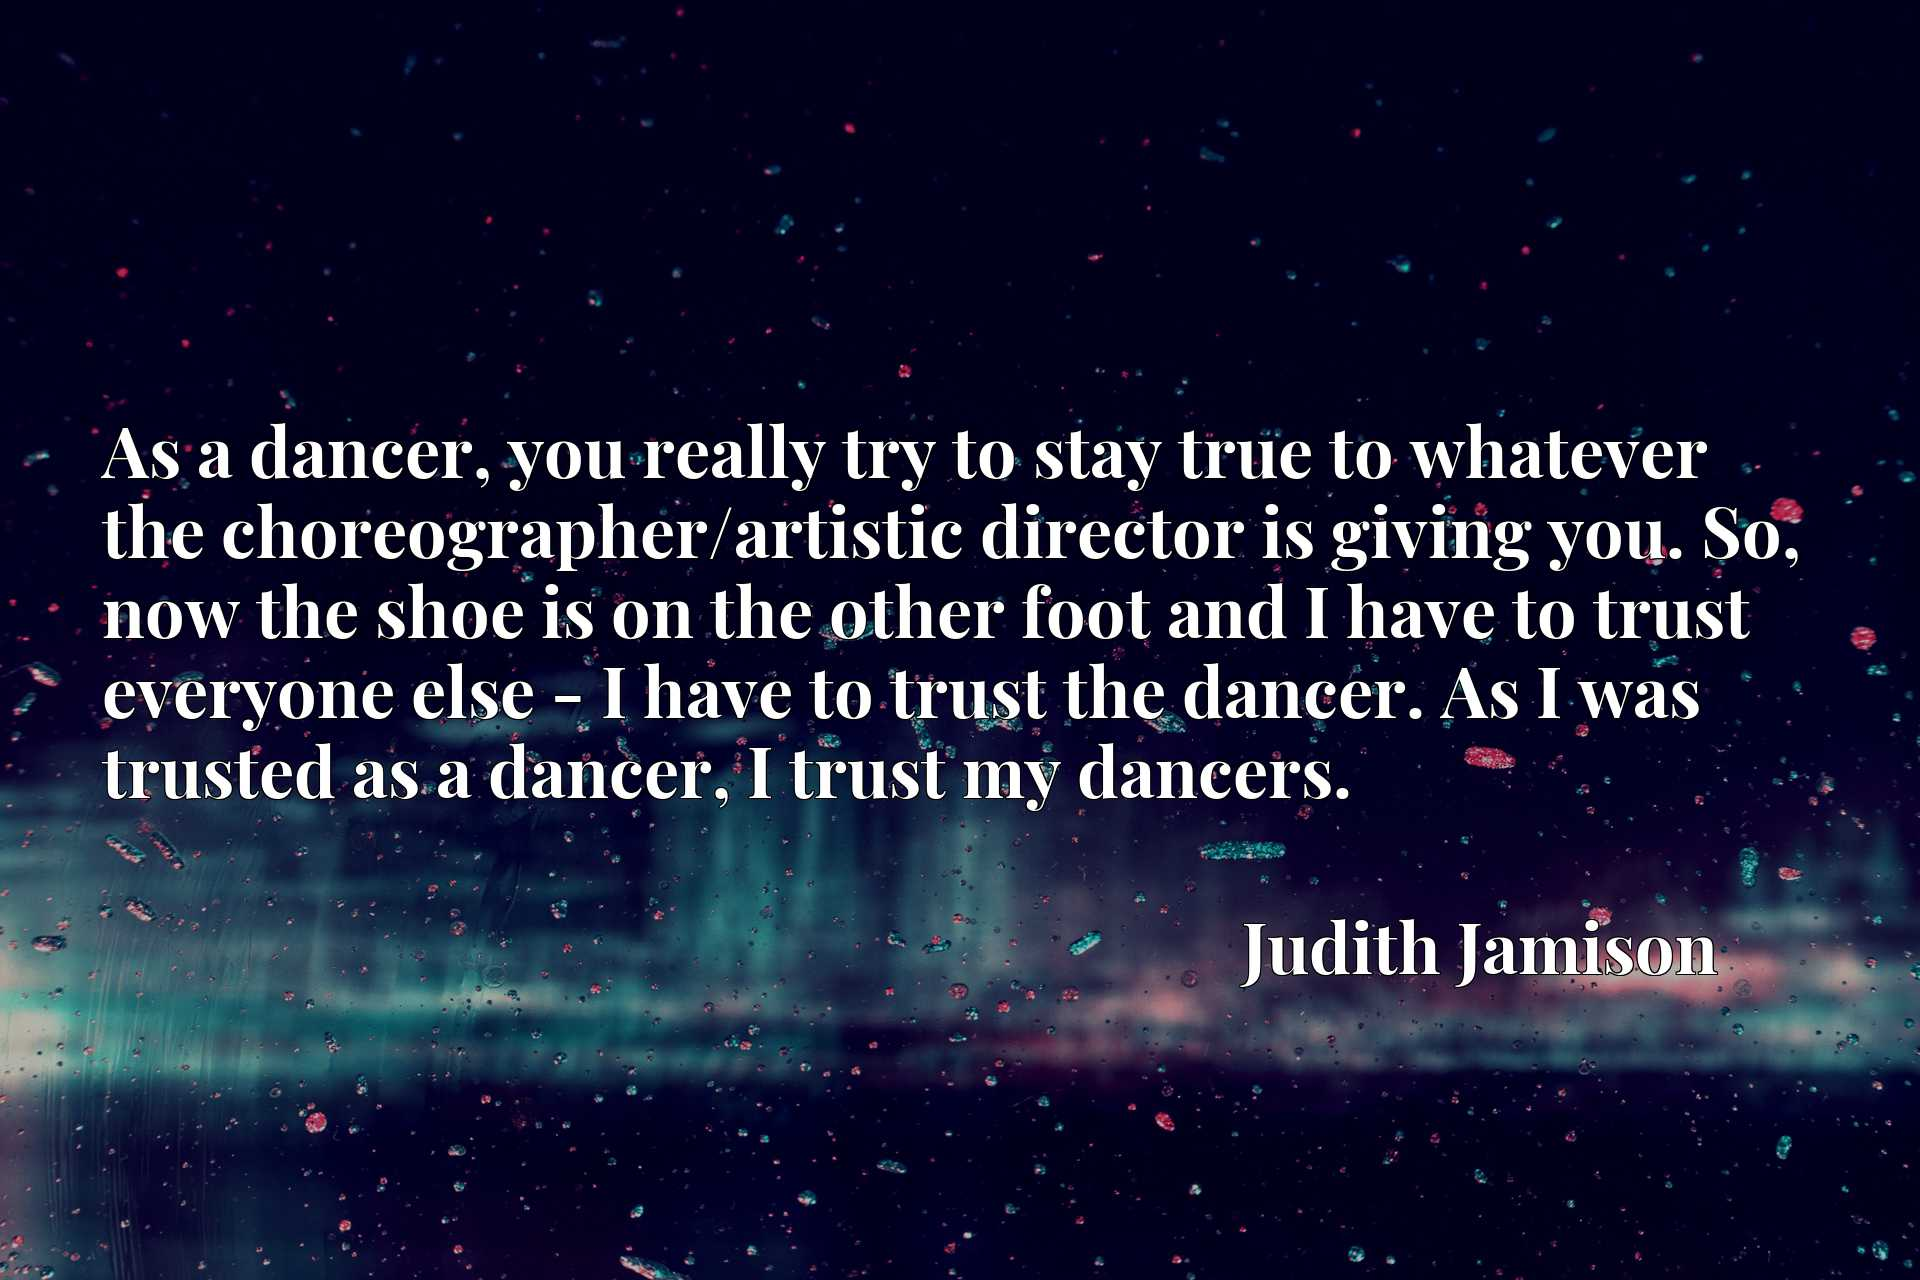 As a dancer, you really try to stay true to whatever the choreographer/artistic director is giving you. So, now the shoe is on the other foot and I have to trust everyone else - I have to trust the dancer. As I was trusted as a dancer, I trust my dancers.